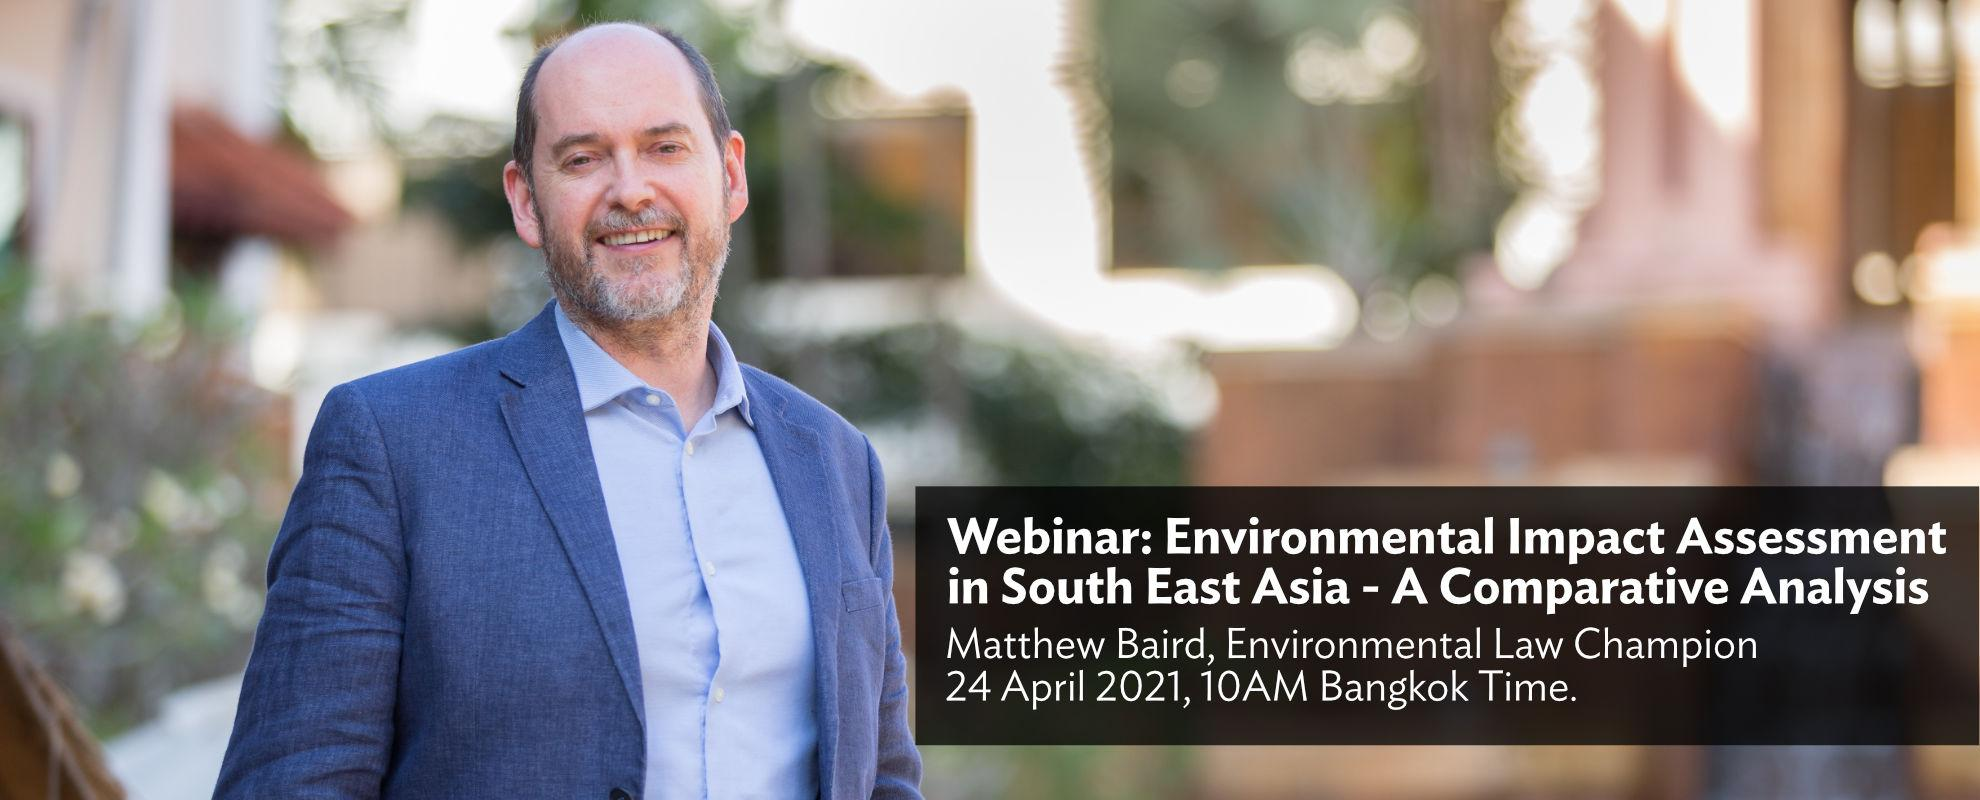 Webinar: Environmental Impact Assessment in South East Asia - A Comparative Analysis